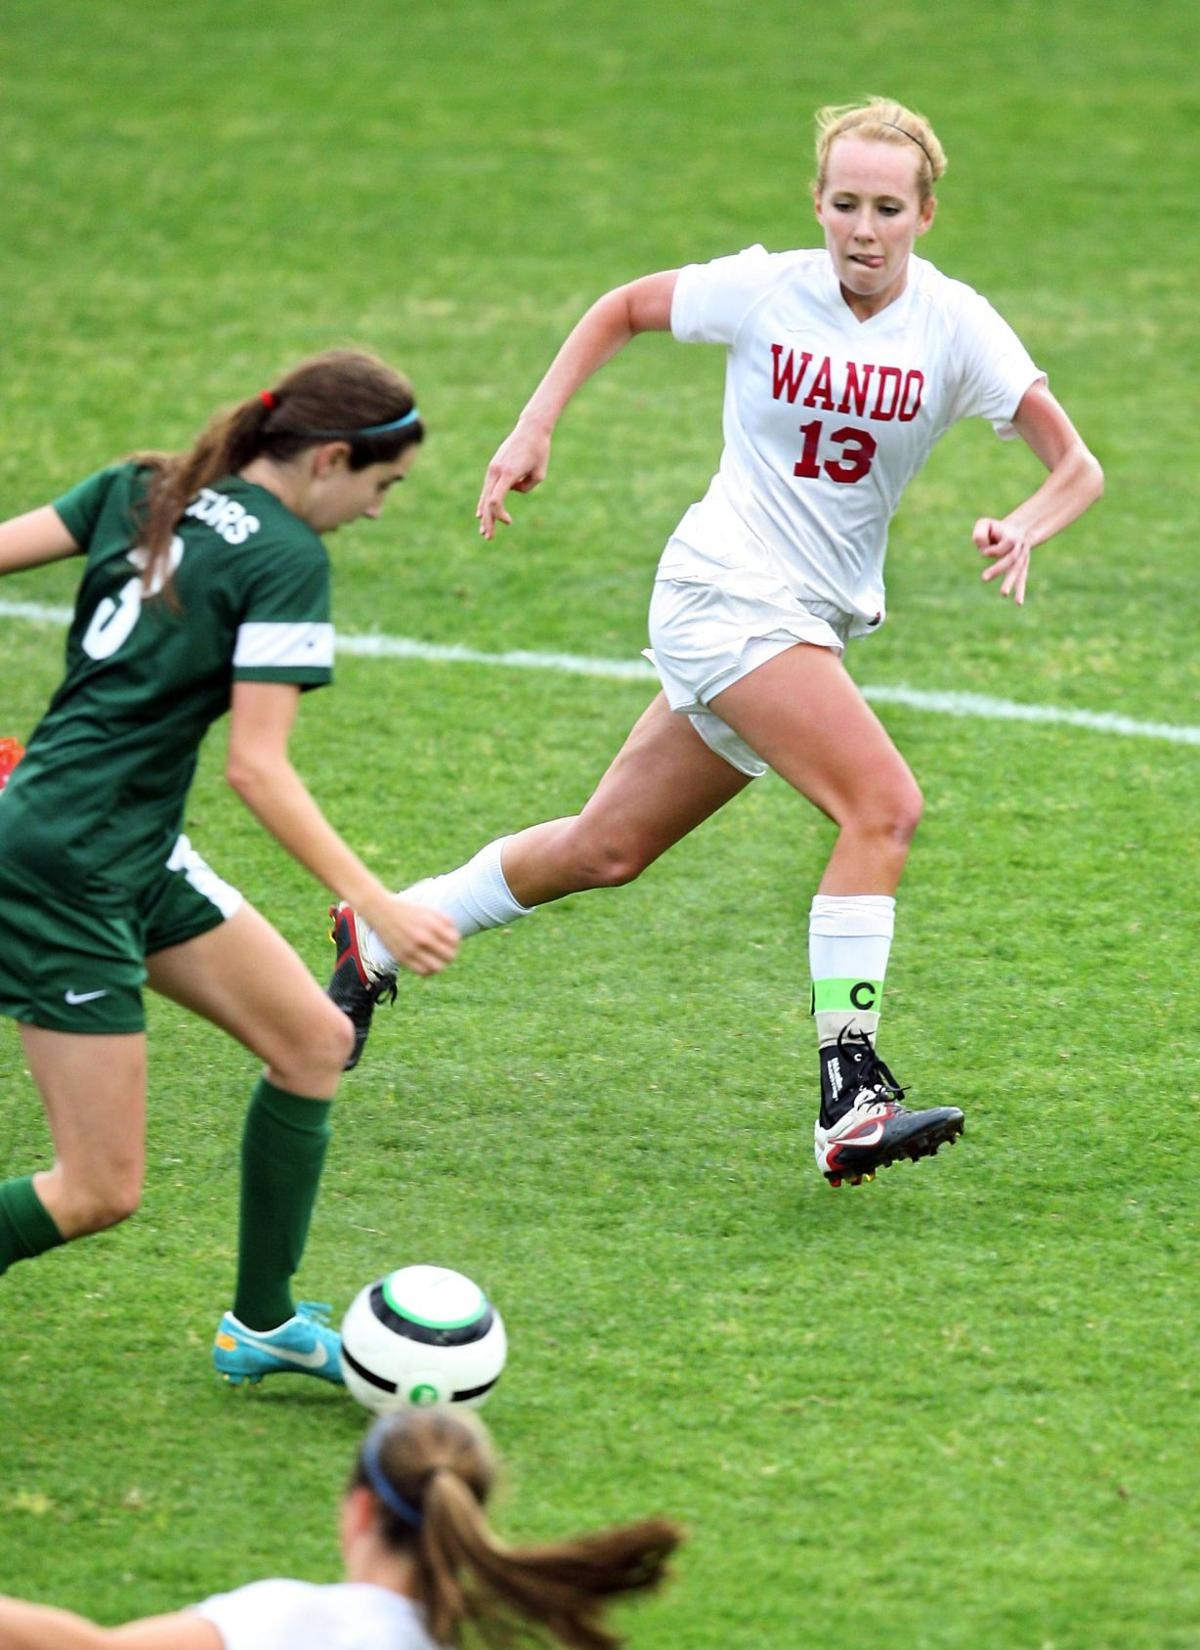 Wando soccer standout McCool hopes for one last state title